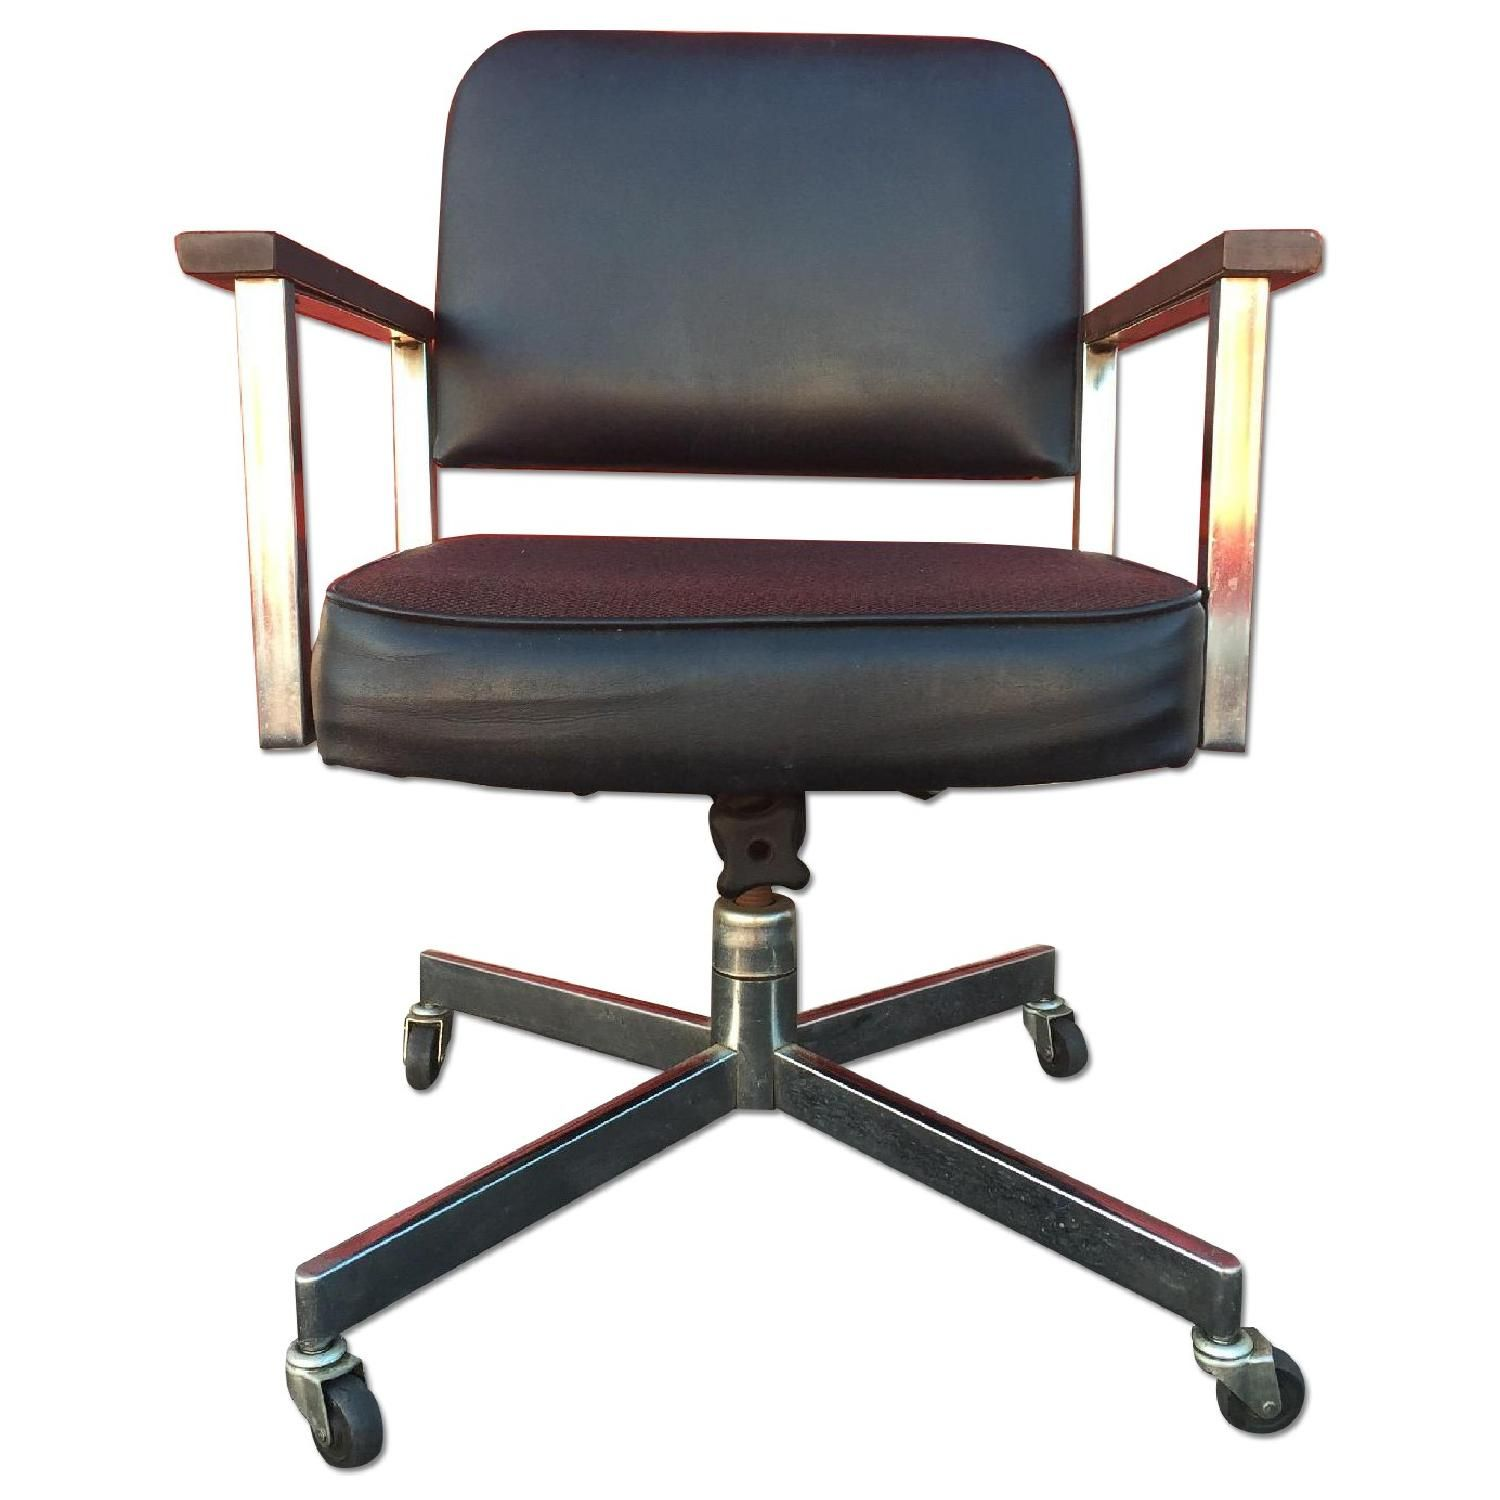 Mid Century Wheeled Office Chair W Wood Arms Aptdeco Chair Used Office Chairs Mid Century Office Chair